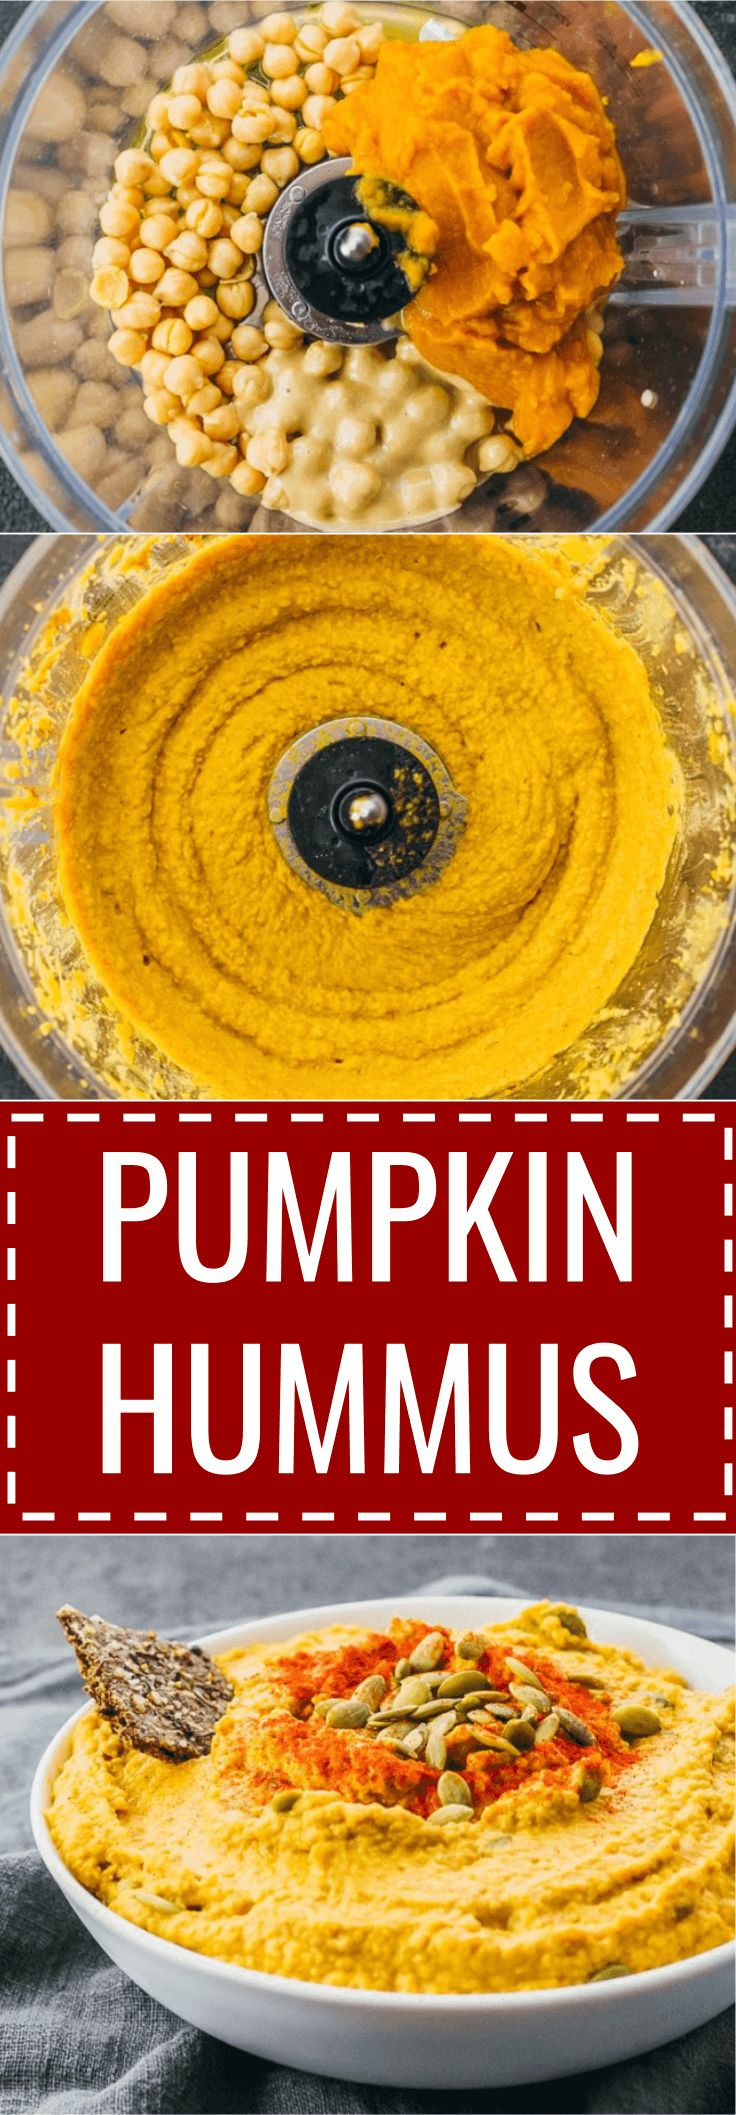 Spiced pumpkin hummus dip with tahini / thanksgiving / spicy / how to make / cinnamon / recipe / sweet / appetizers / savory / vegan / olive oils / fall / food / homemade / mediterranean / keto / low carb / diet / atkins / induction / meals / recipes / ea